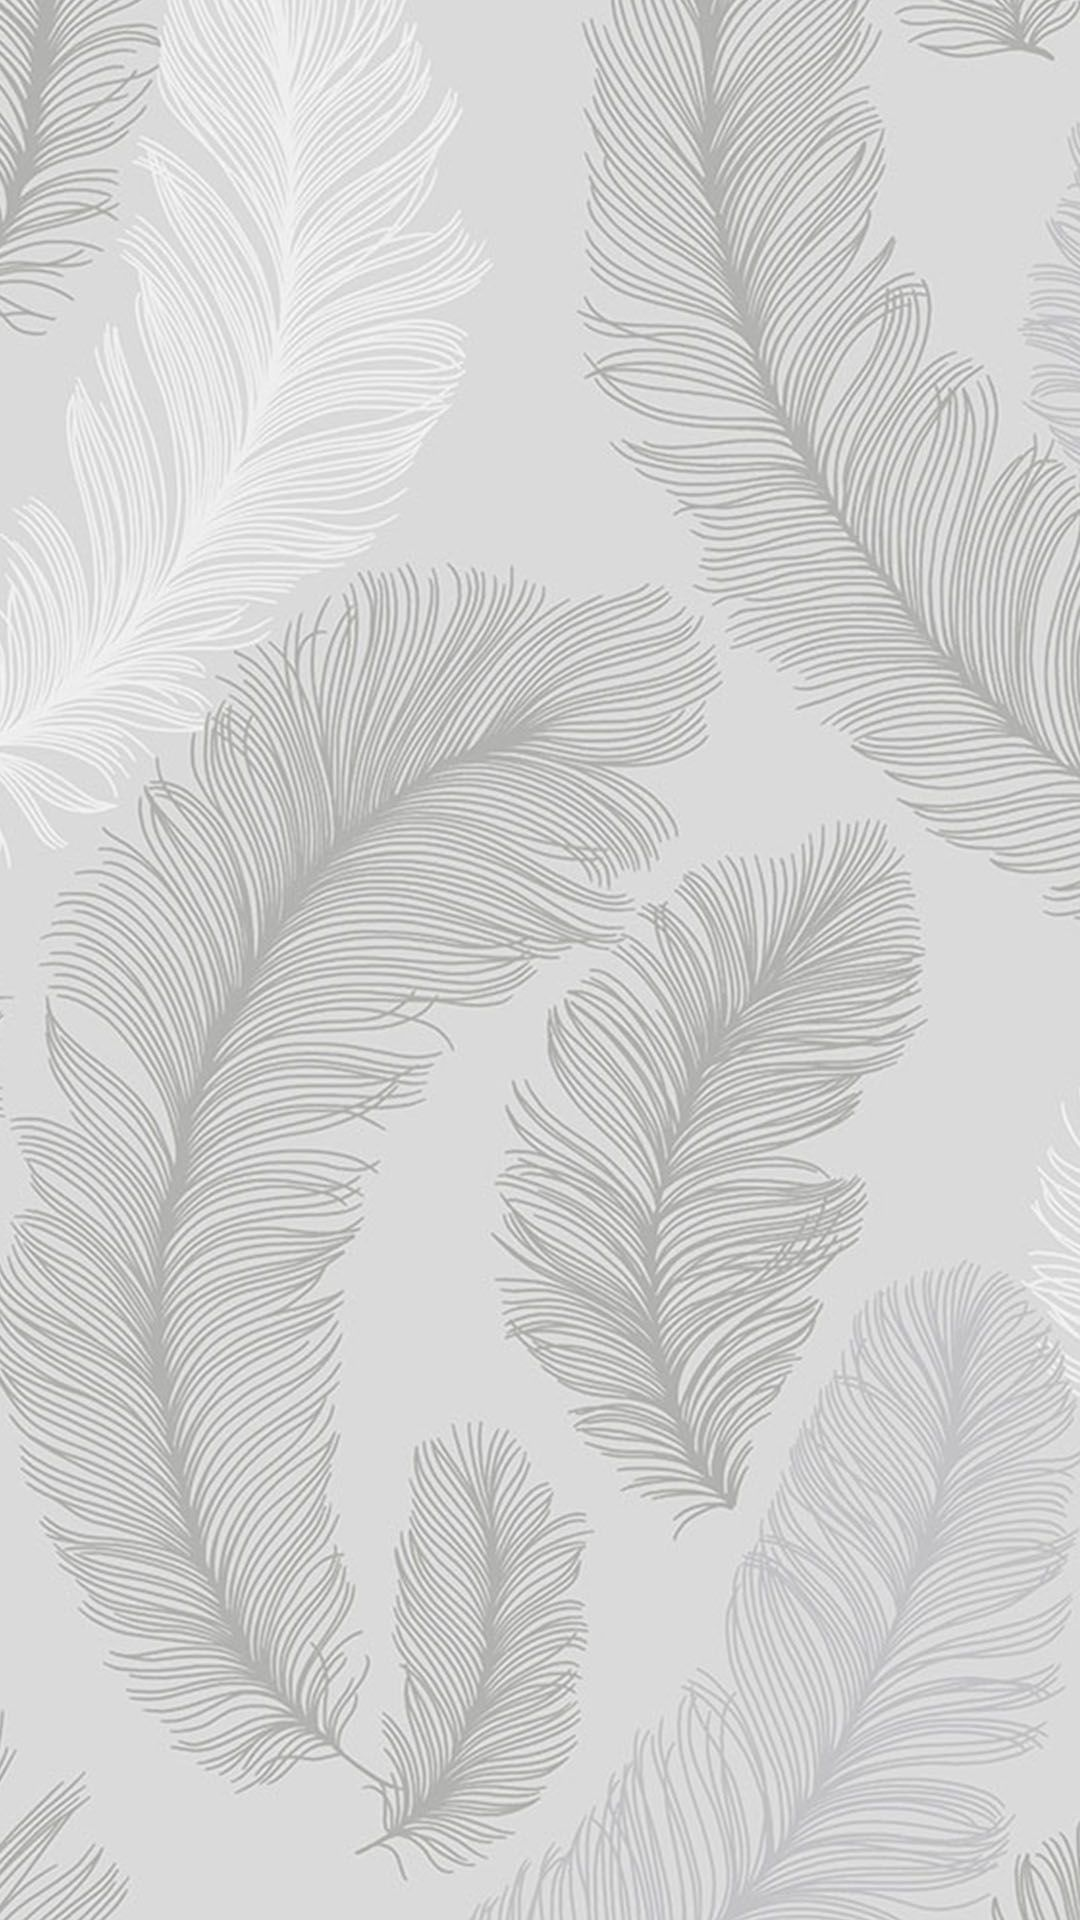 The Plume Feather Wallpaper from I Love Wallpaper.   The perfect go-to Wallpaper if you're looking for something Beautiful & Elegant. It's Delicate Design is suitable for any living space.  For Similar Designs visit ilovewallpaper.co.uk #ilovewallpaper #Wallpaper #Homedecor #Inspiration